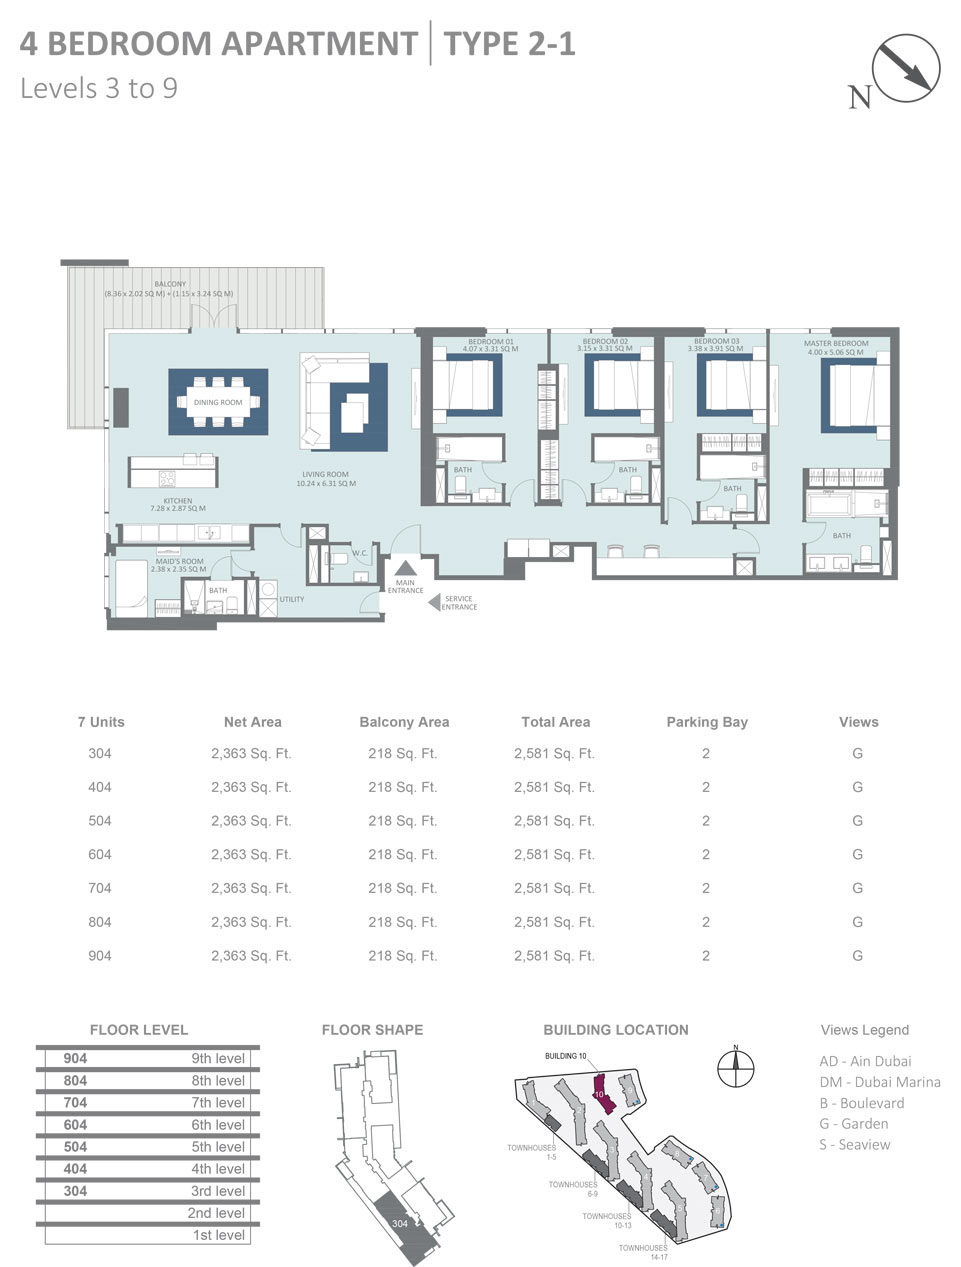 Building 10 - 4 Bedroom Apartment Type 2 - 1, Level 3 - 9, Size 2581  sq. ft.